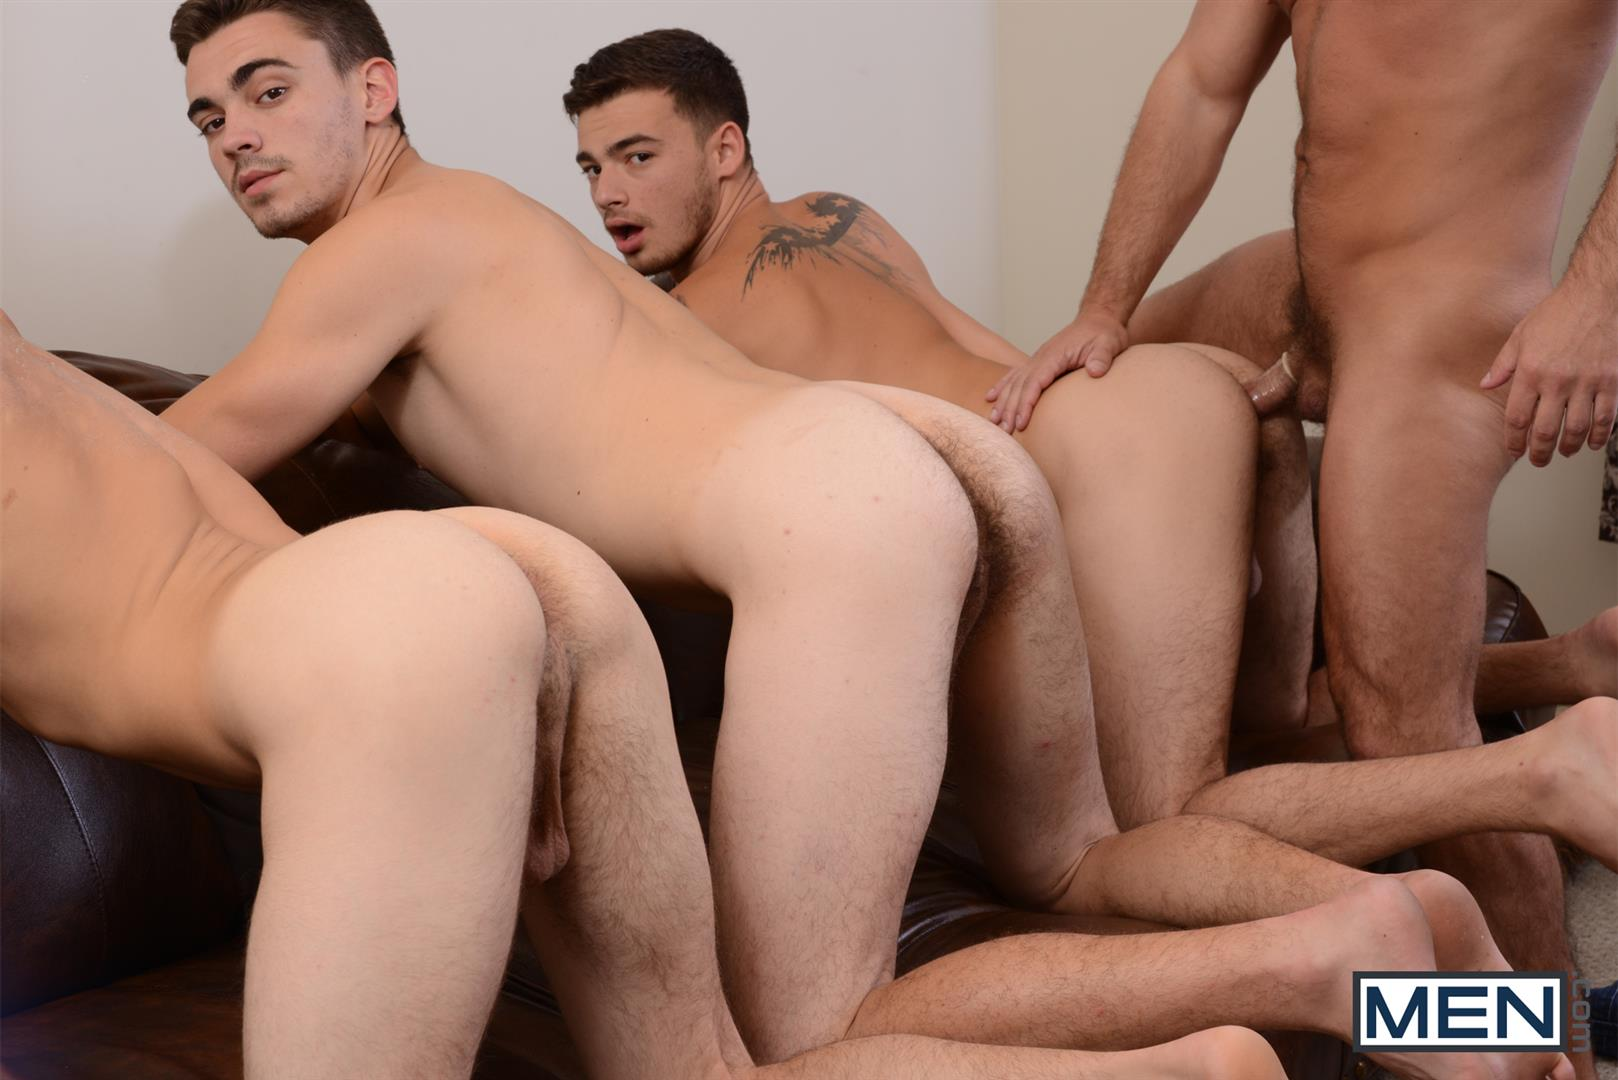 Men-Jizz-Orgy-Asher-Hawk-and-Dirk-Caber-and-Johnny-Rapid-and-Trevor-Spade-Triple-Penetrated-In-the-Ass-Amateur-Gay-Porn-12 Stepfather Dirk Caber Gets TRIPLE Penetrated By His Stepsons